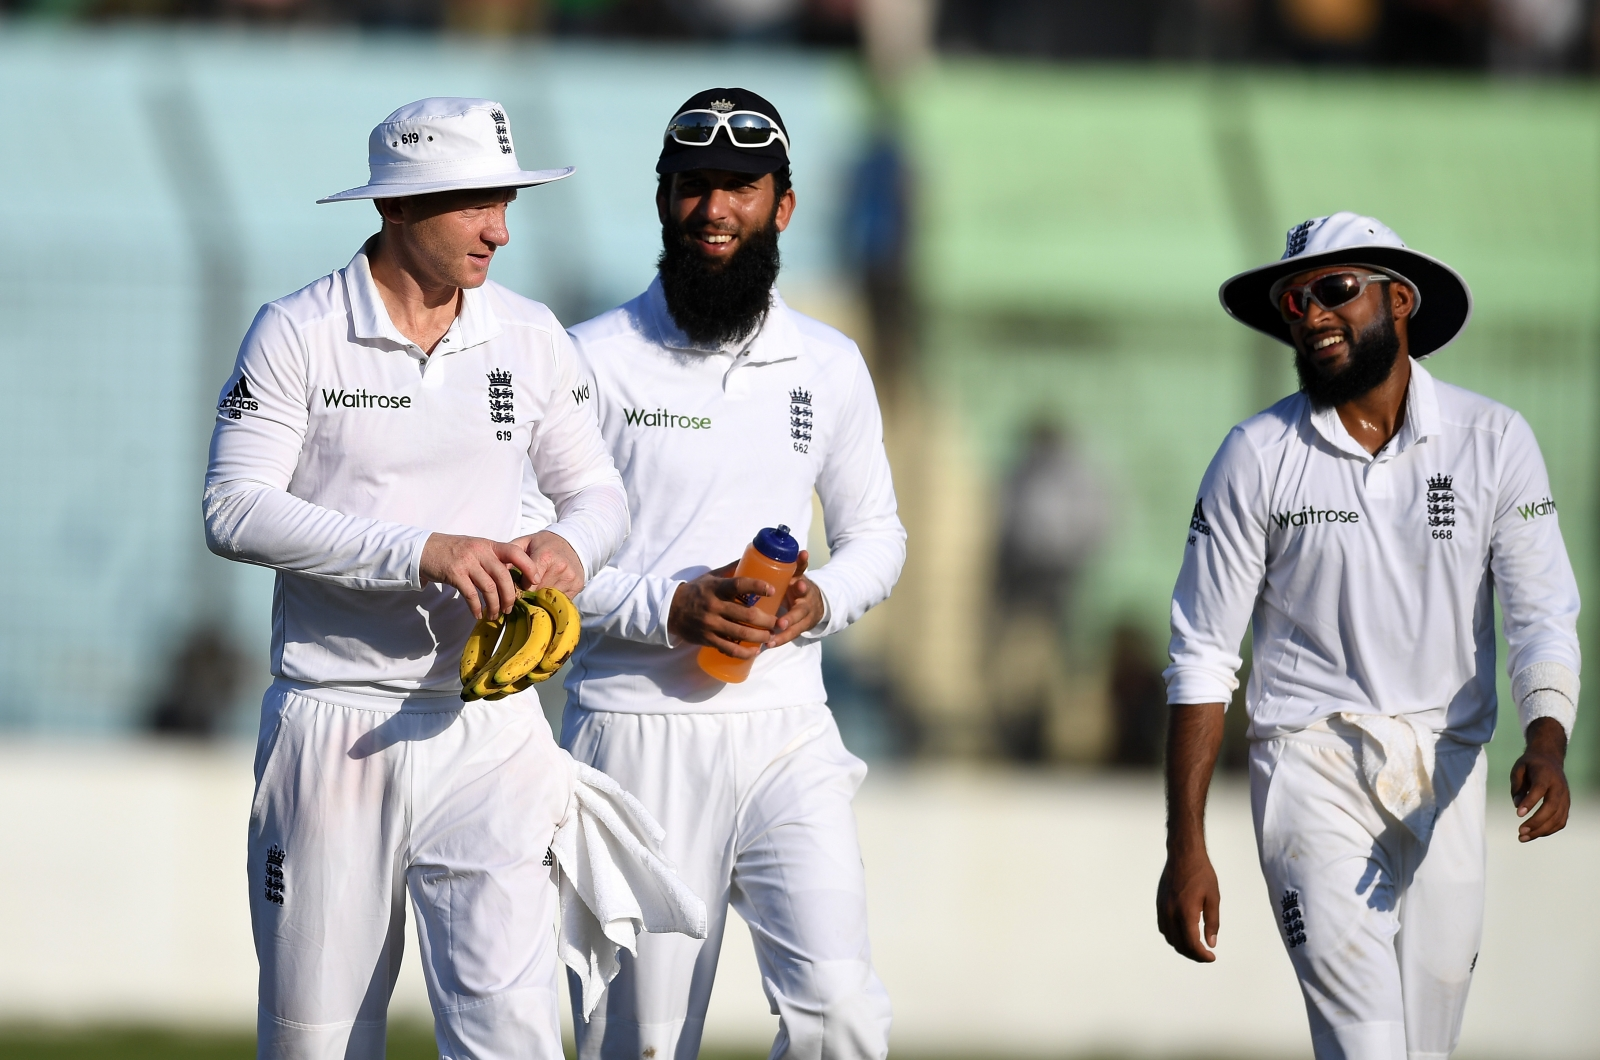 Gareth Batty, Moeen Ali and Adil Rashid